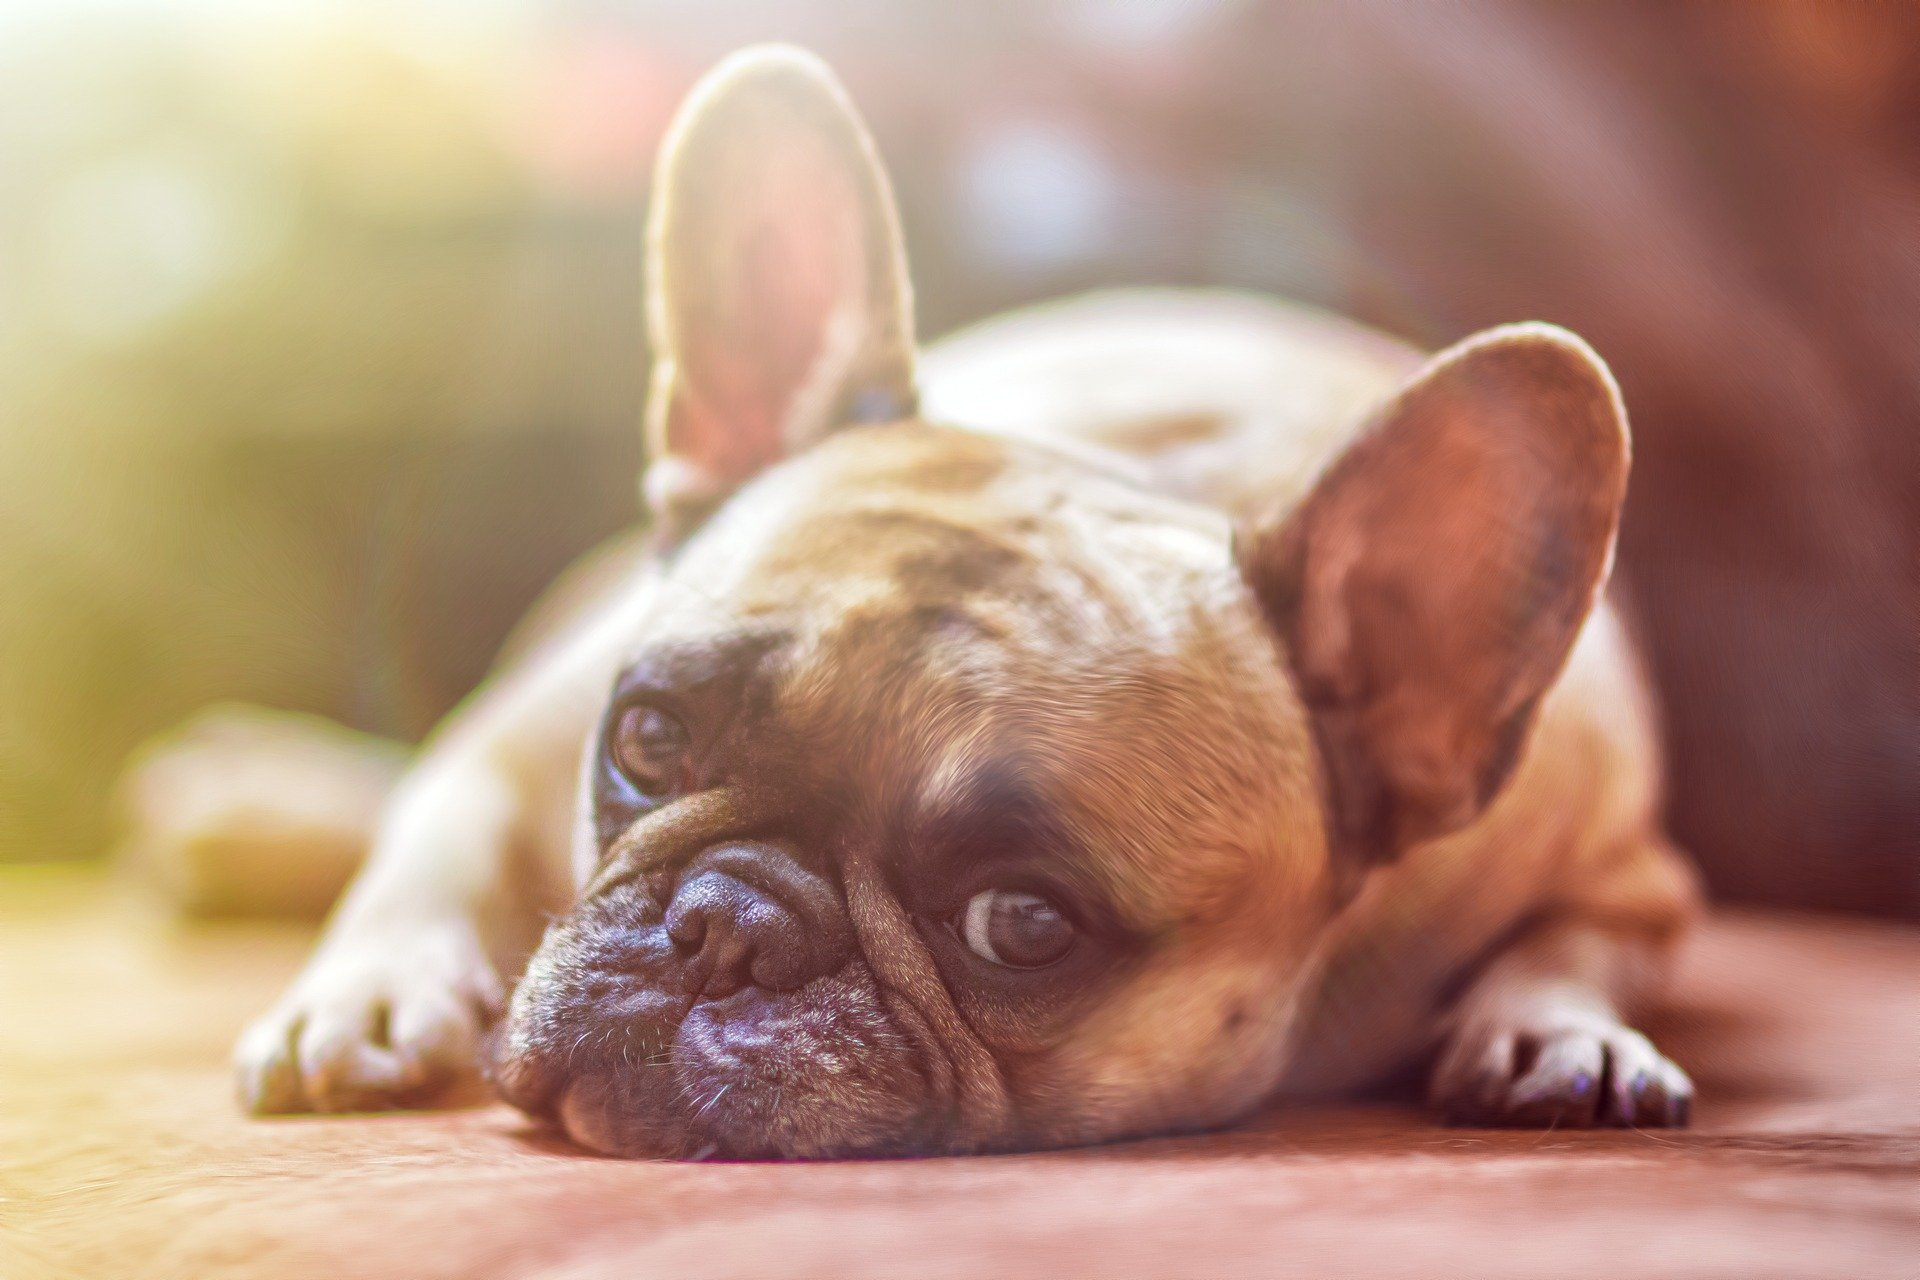 Can I use Colloidal Silver on my dog?